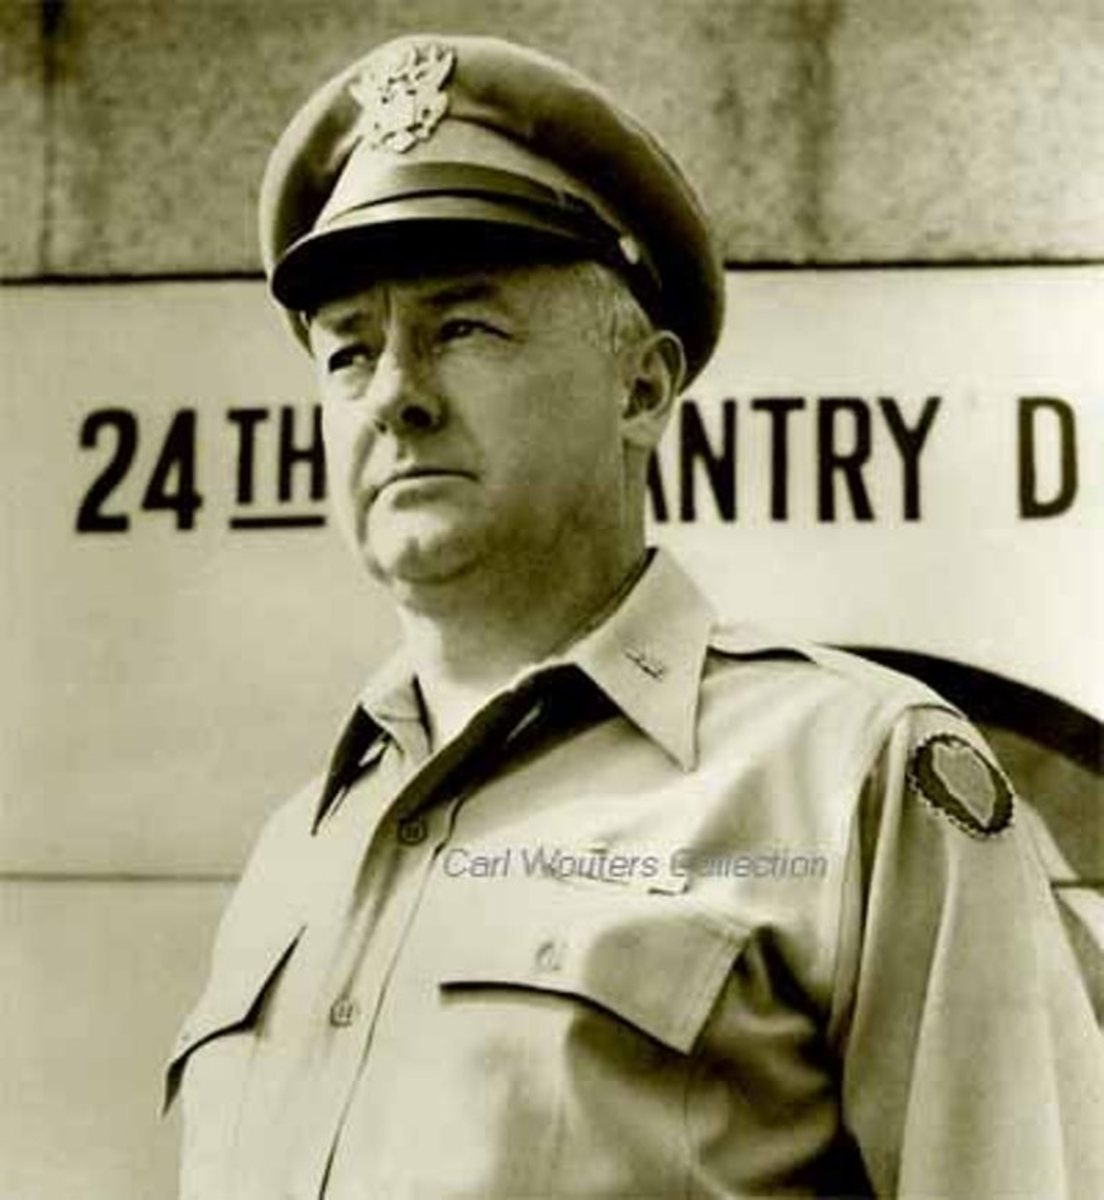 Colonel Charles Cavender in a postwar photo